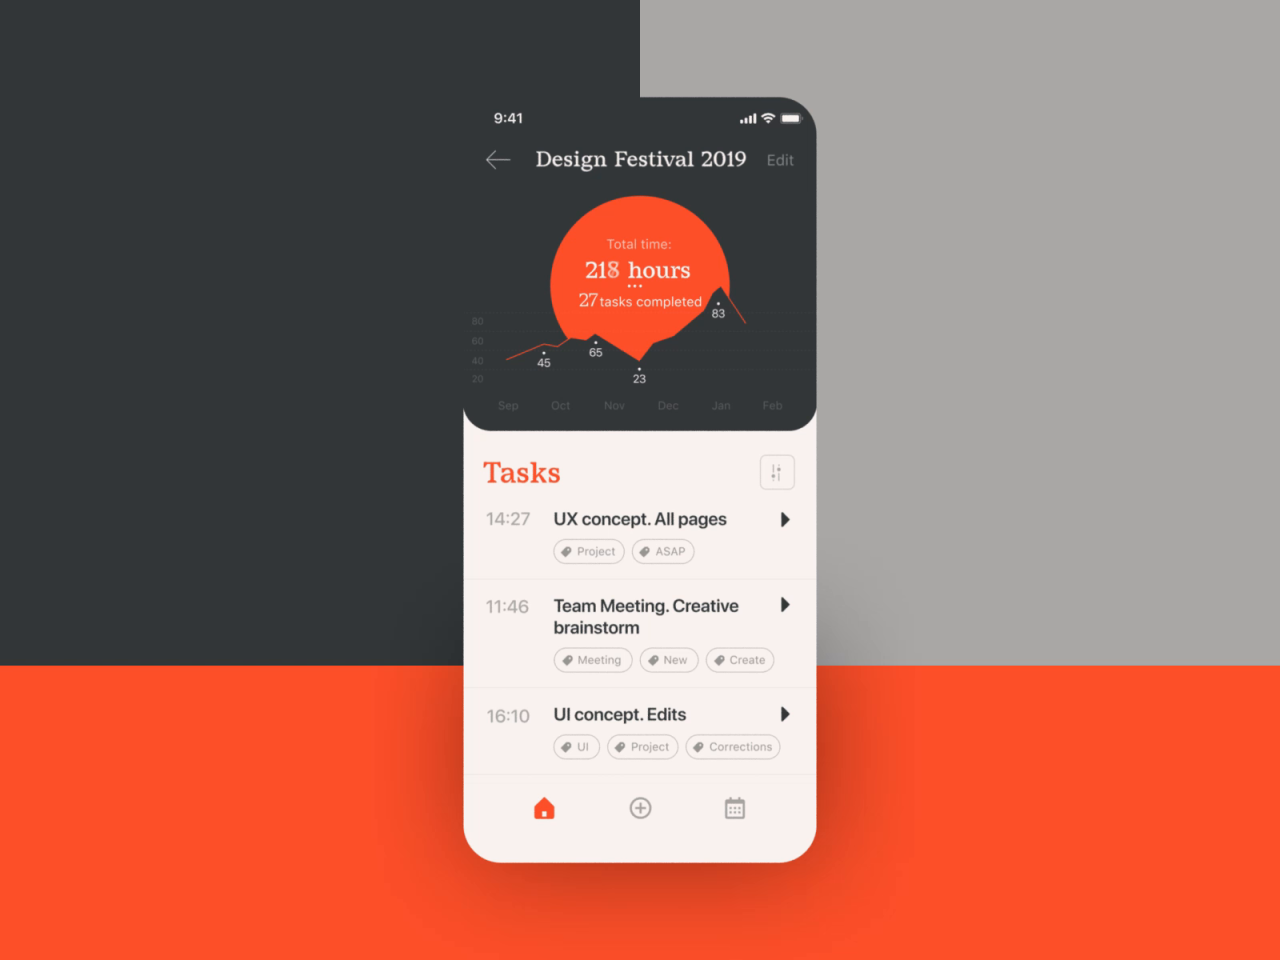 Task Tracker Interactions by Tubik #ui#ux#design drips#interface#animation#app design#design#design studio#graphic design#interaction#interaction design#mobile#mobile application#mobile screens#motion design#task management#task manager#task tracker#time tracker#ui animation#user experience